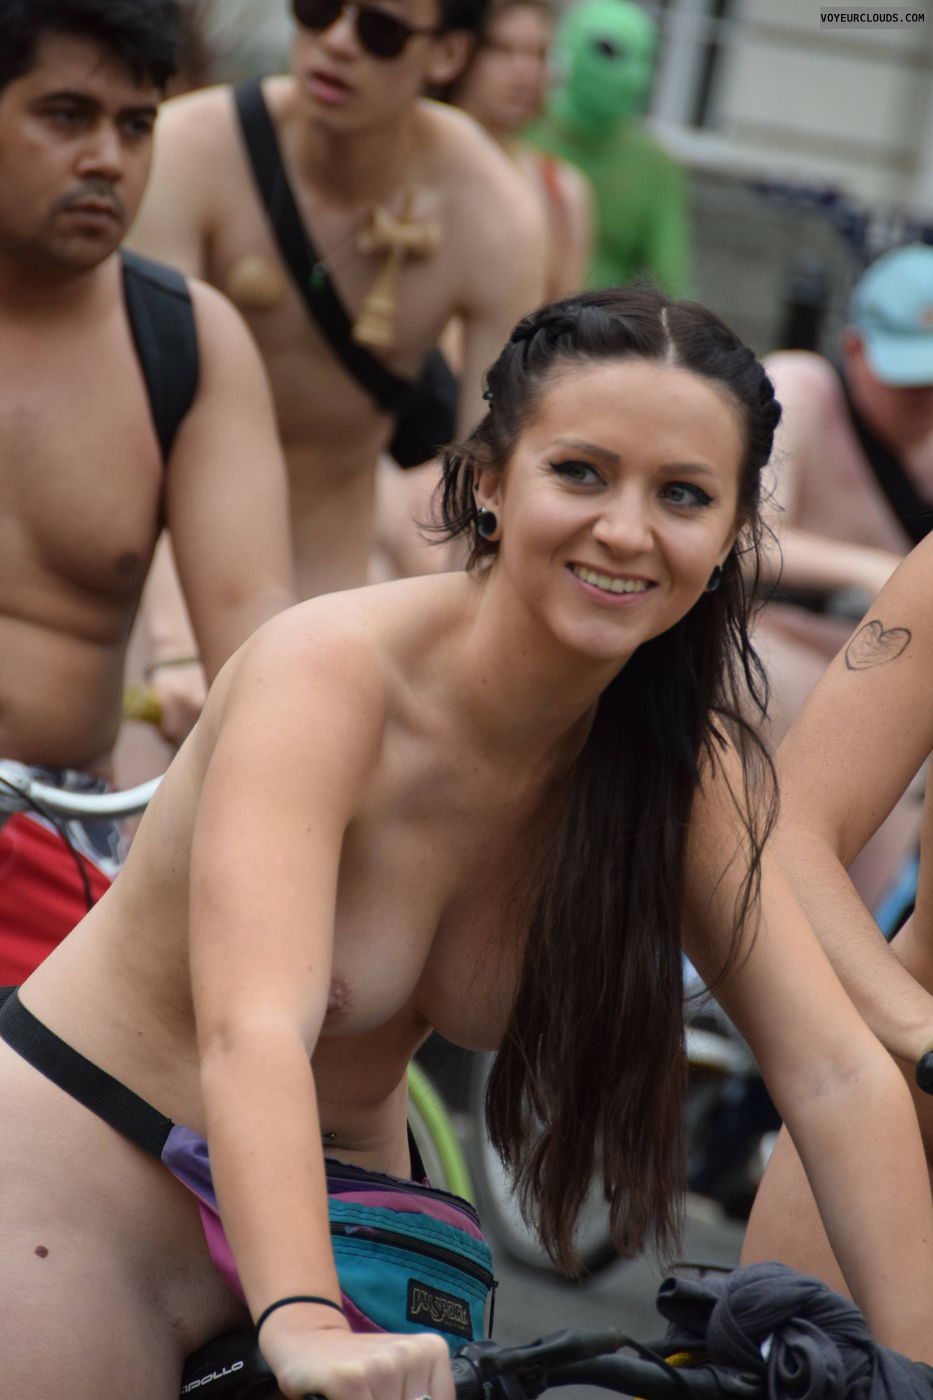 Naked girls that shows boobs